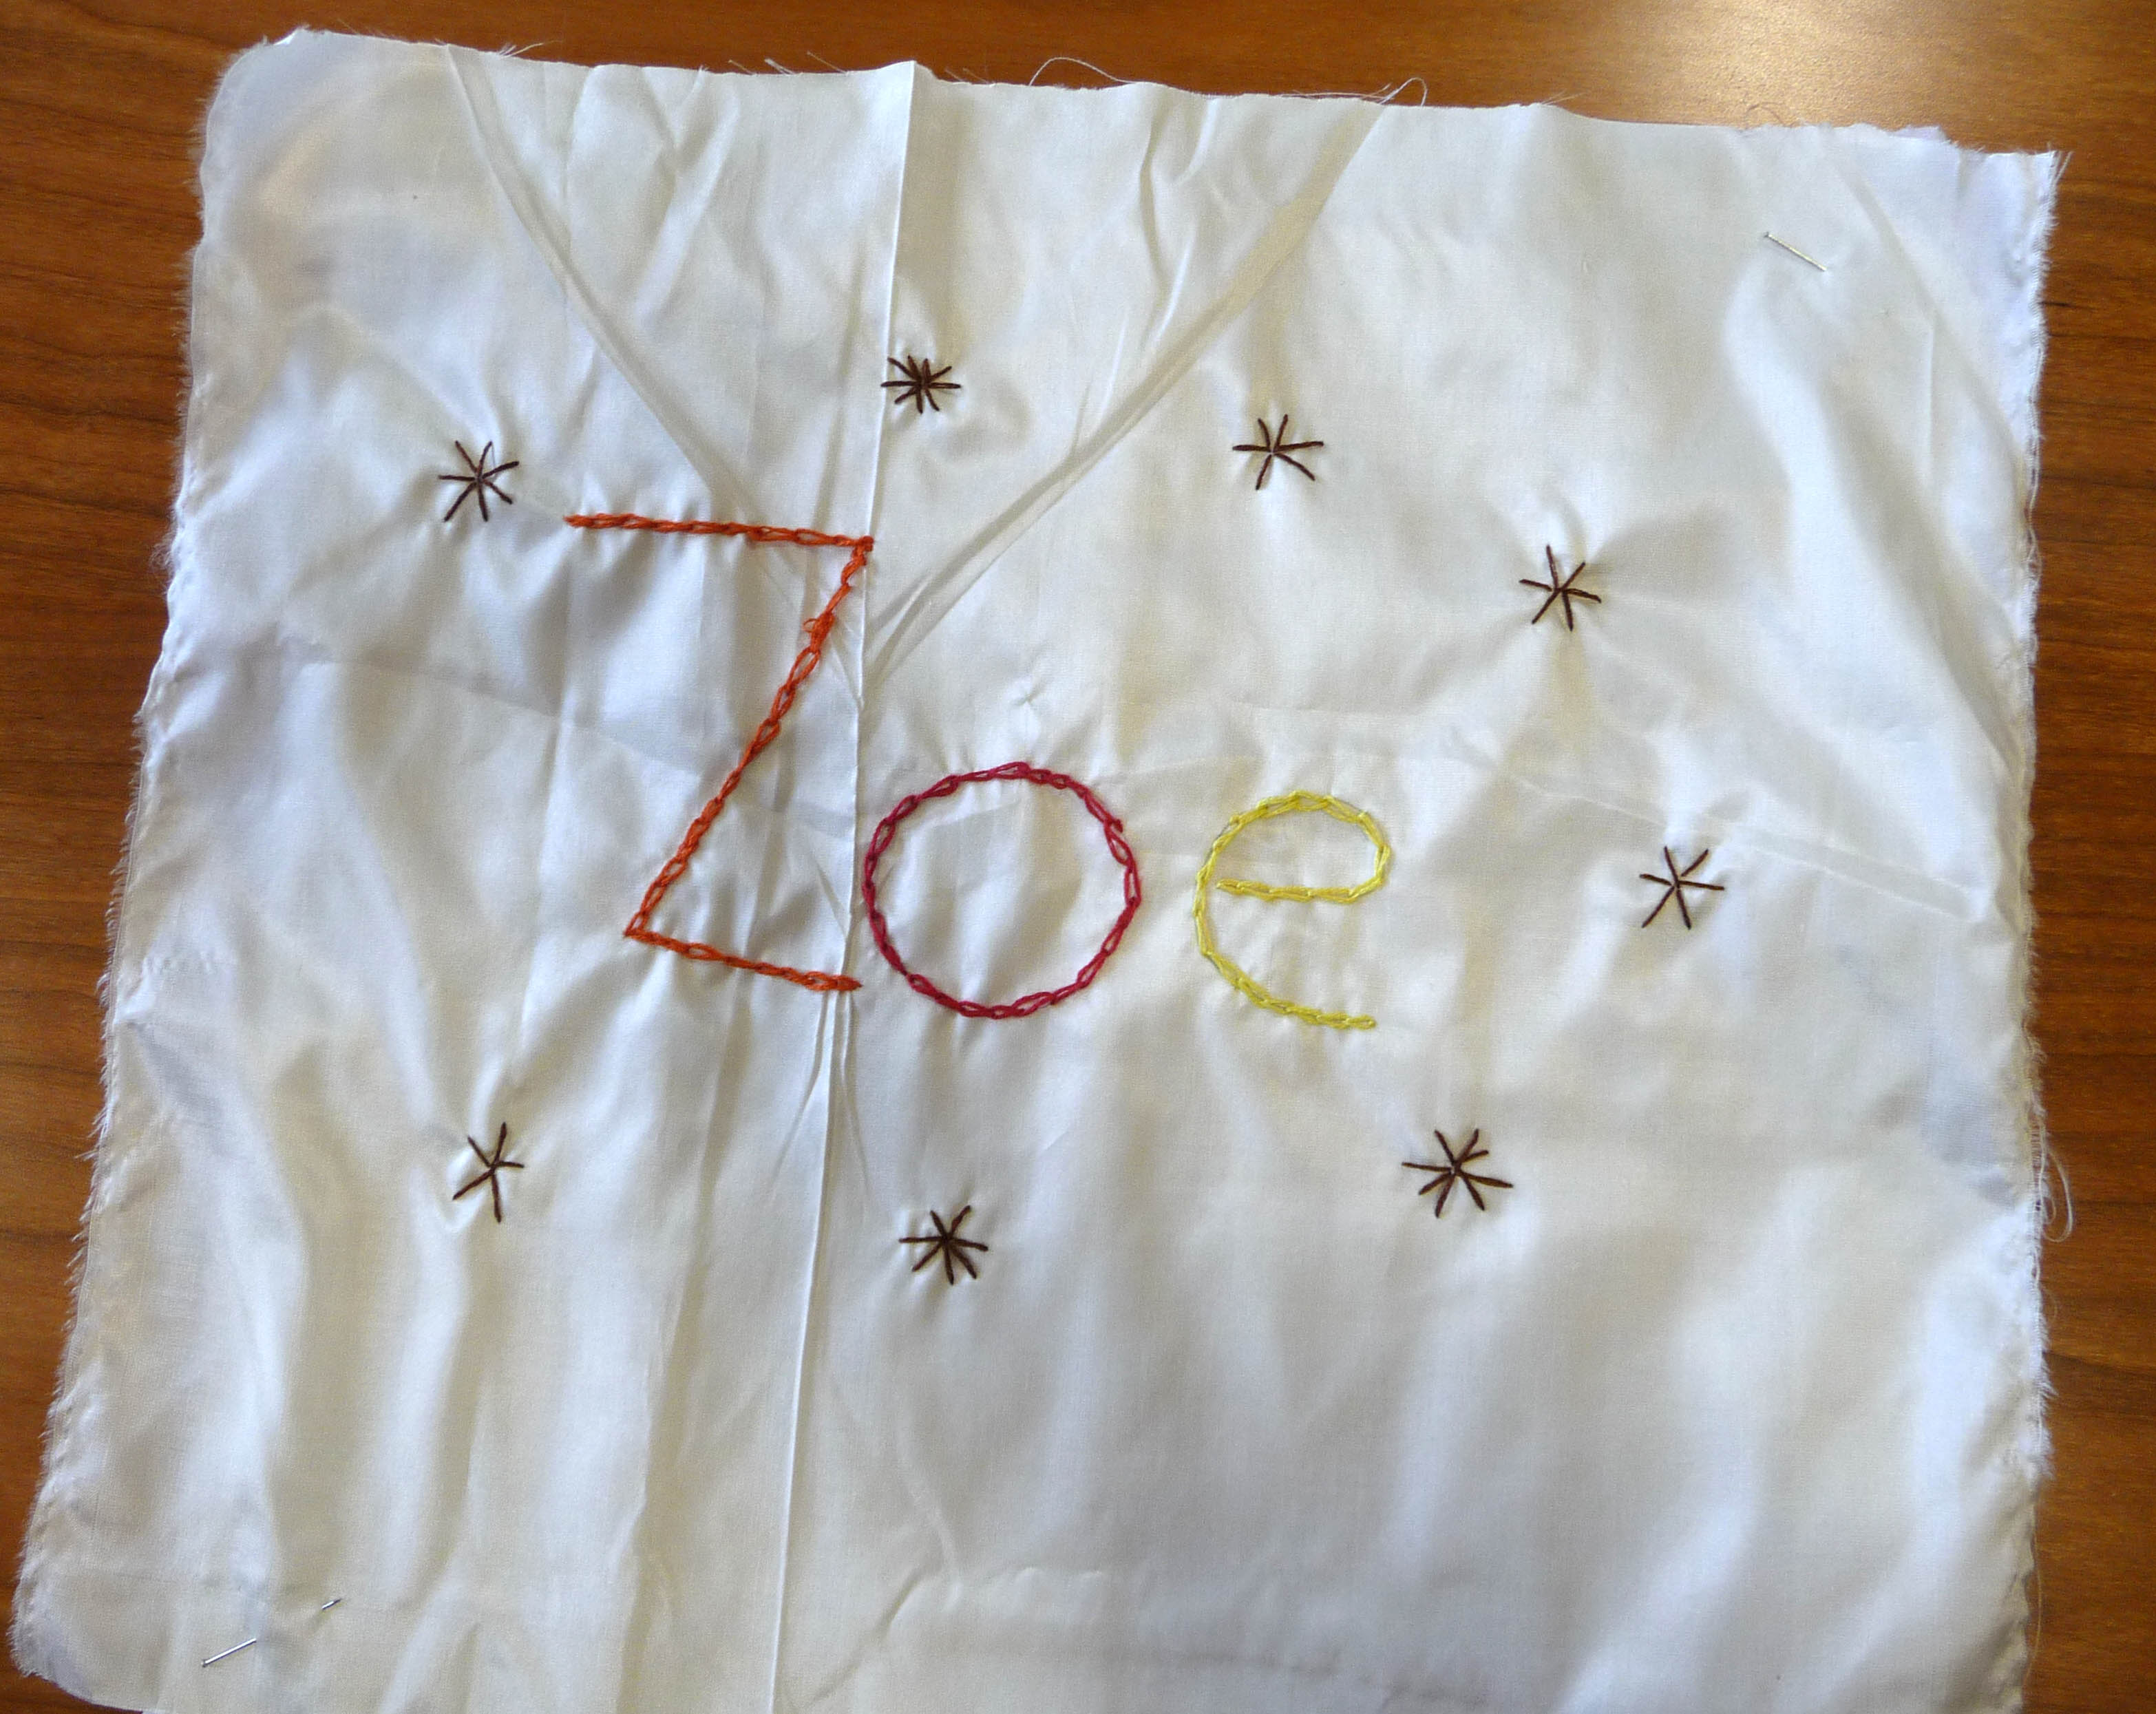 Zoe's completed square